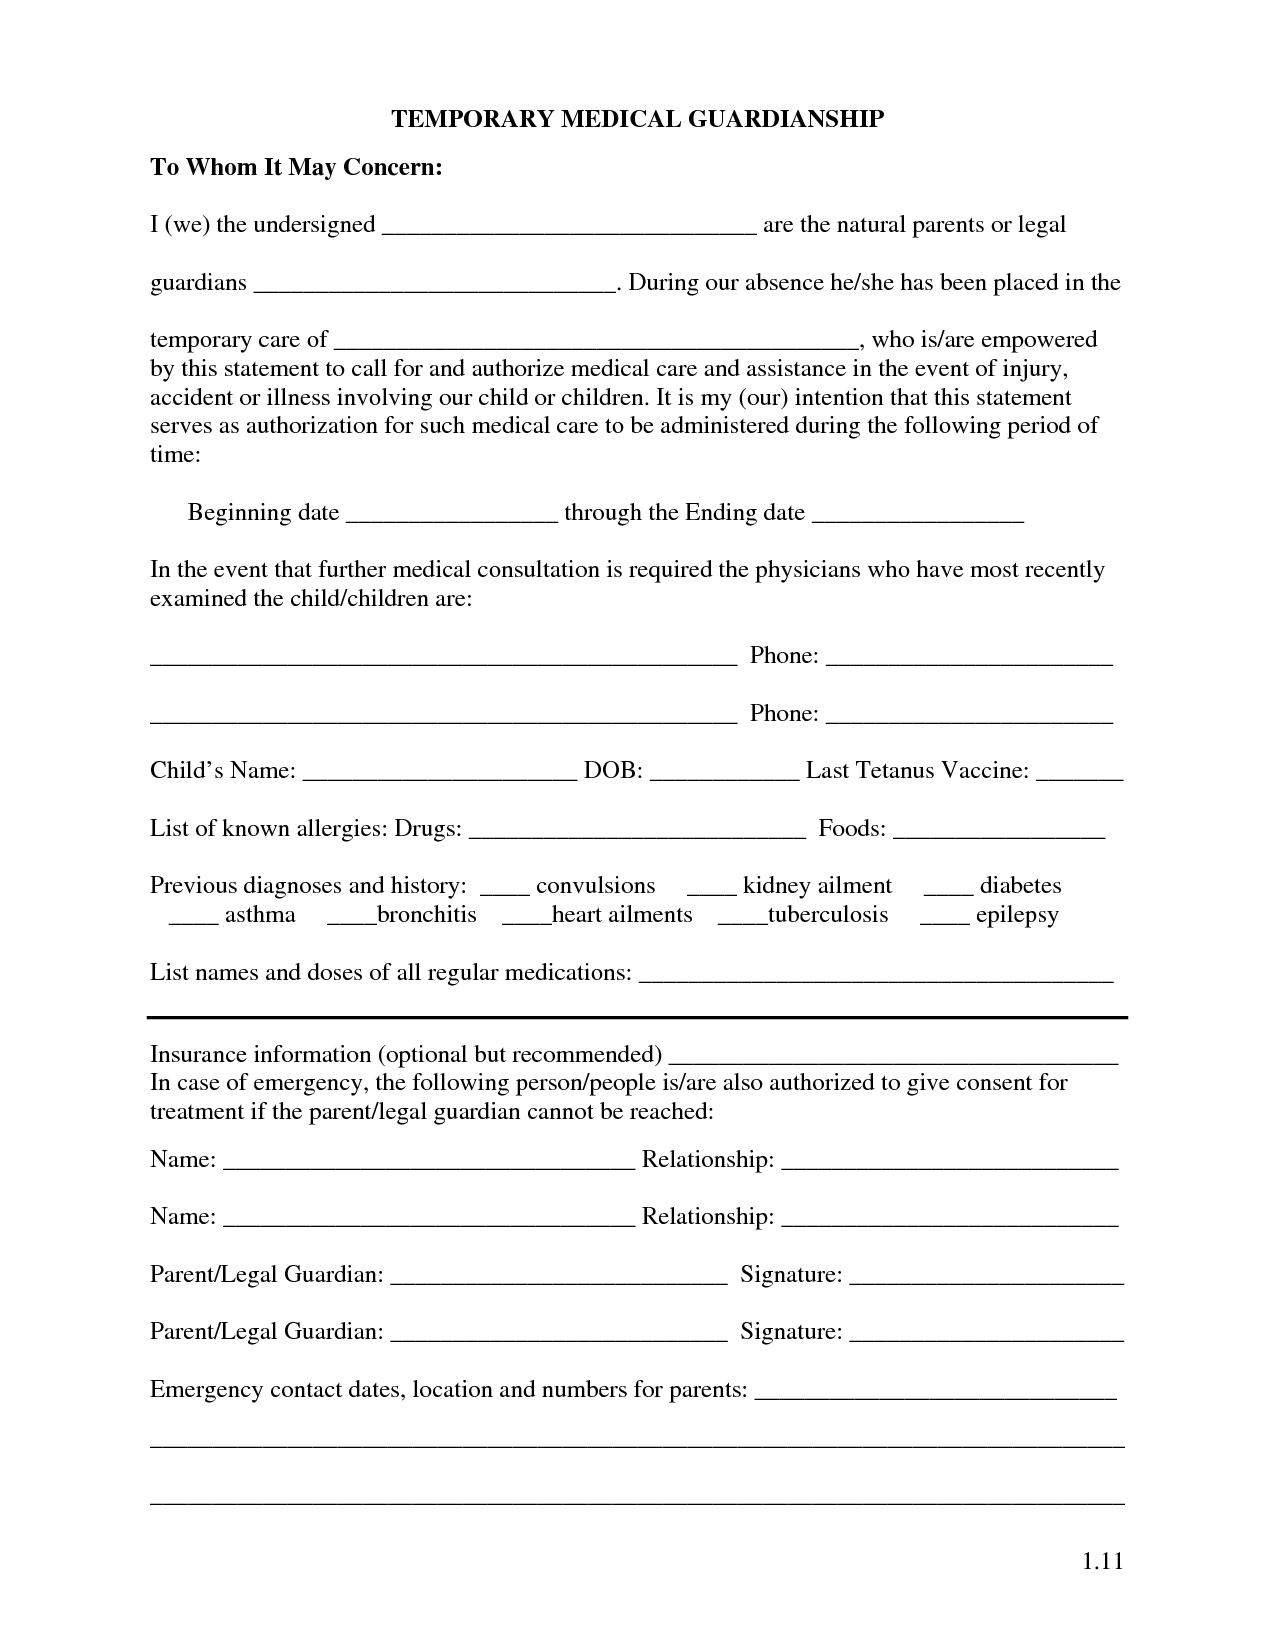 Free Printable Temporary Guardianship Forms | Forms - Free Printable Child Guardianship Forms